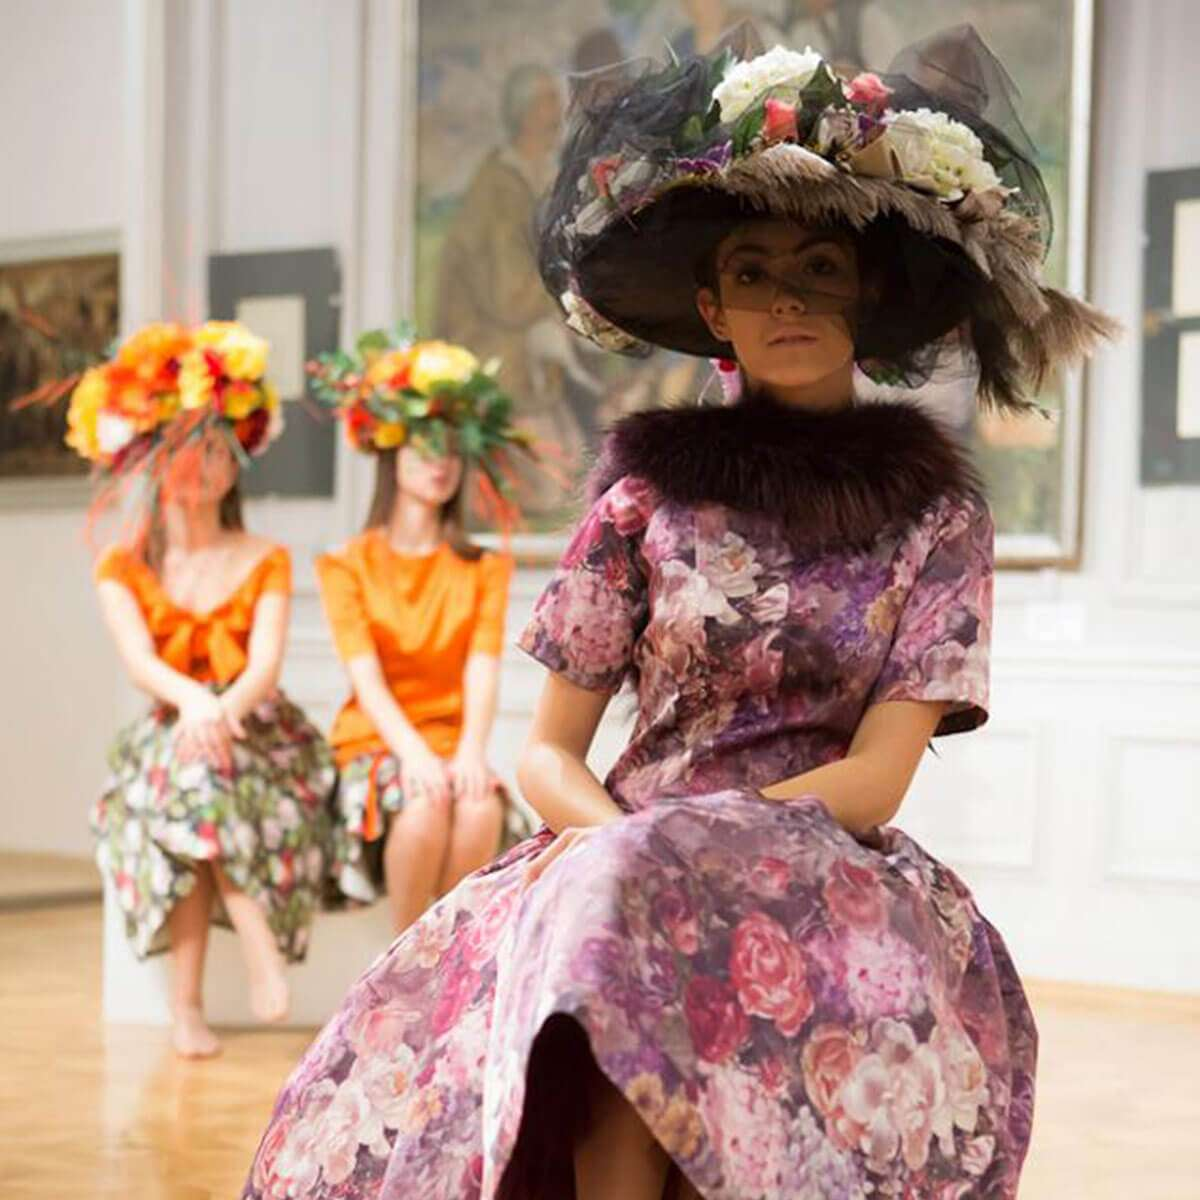 Valeria_Valencer_Hats_flowers_fashion004